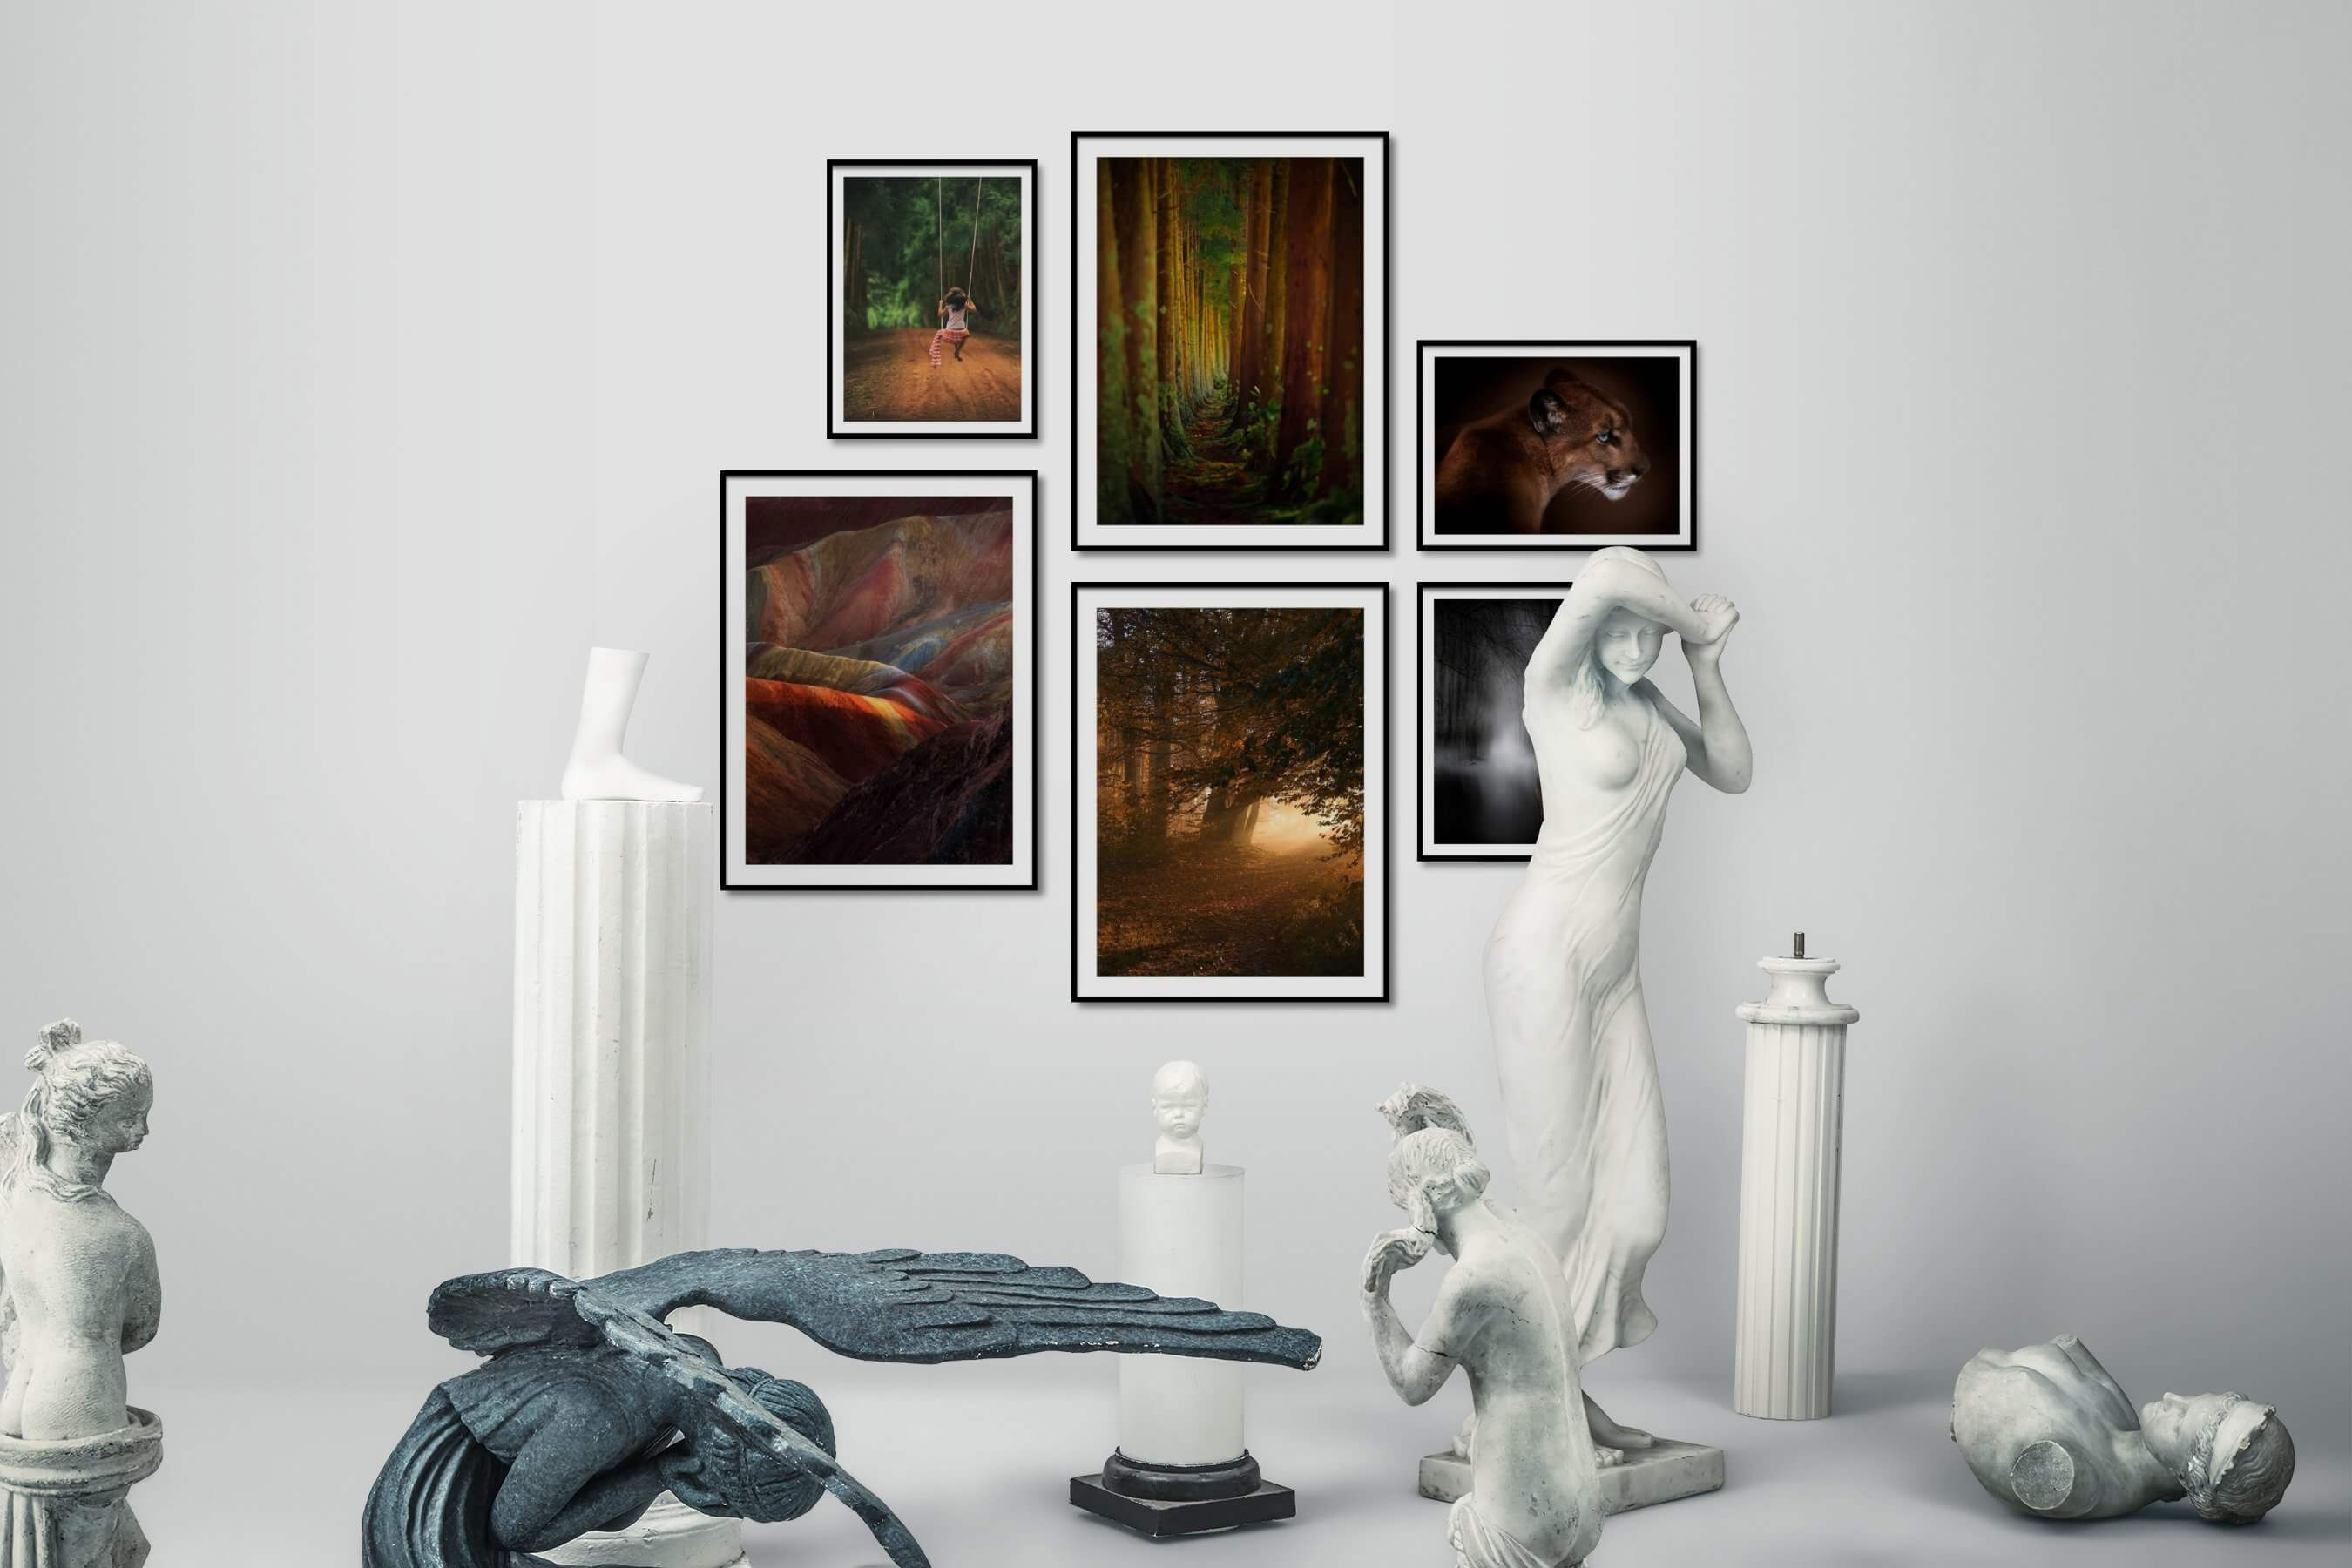 Gallery wall idea with six framed pictures arranged on a wall depicting Country Life, For the Moderate, Nature, and Animals